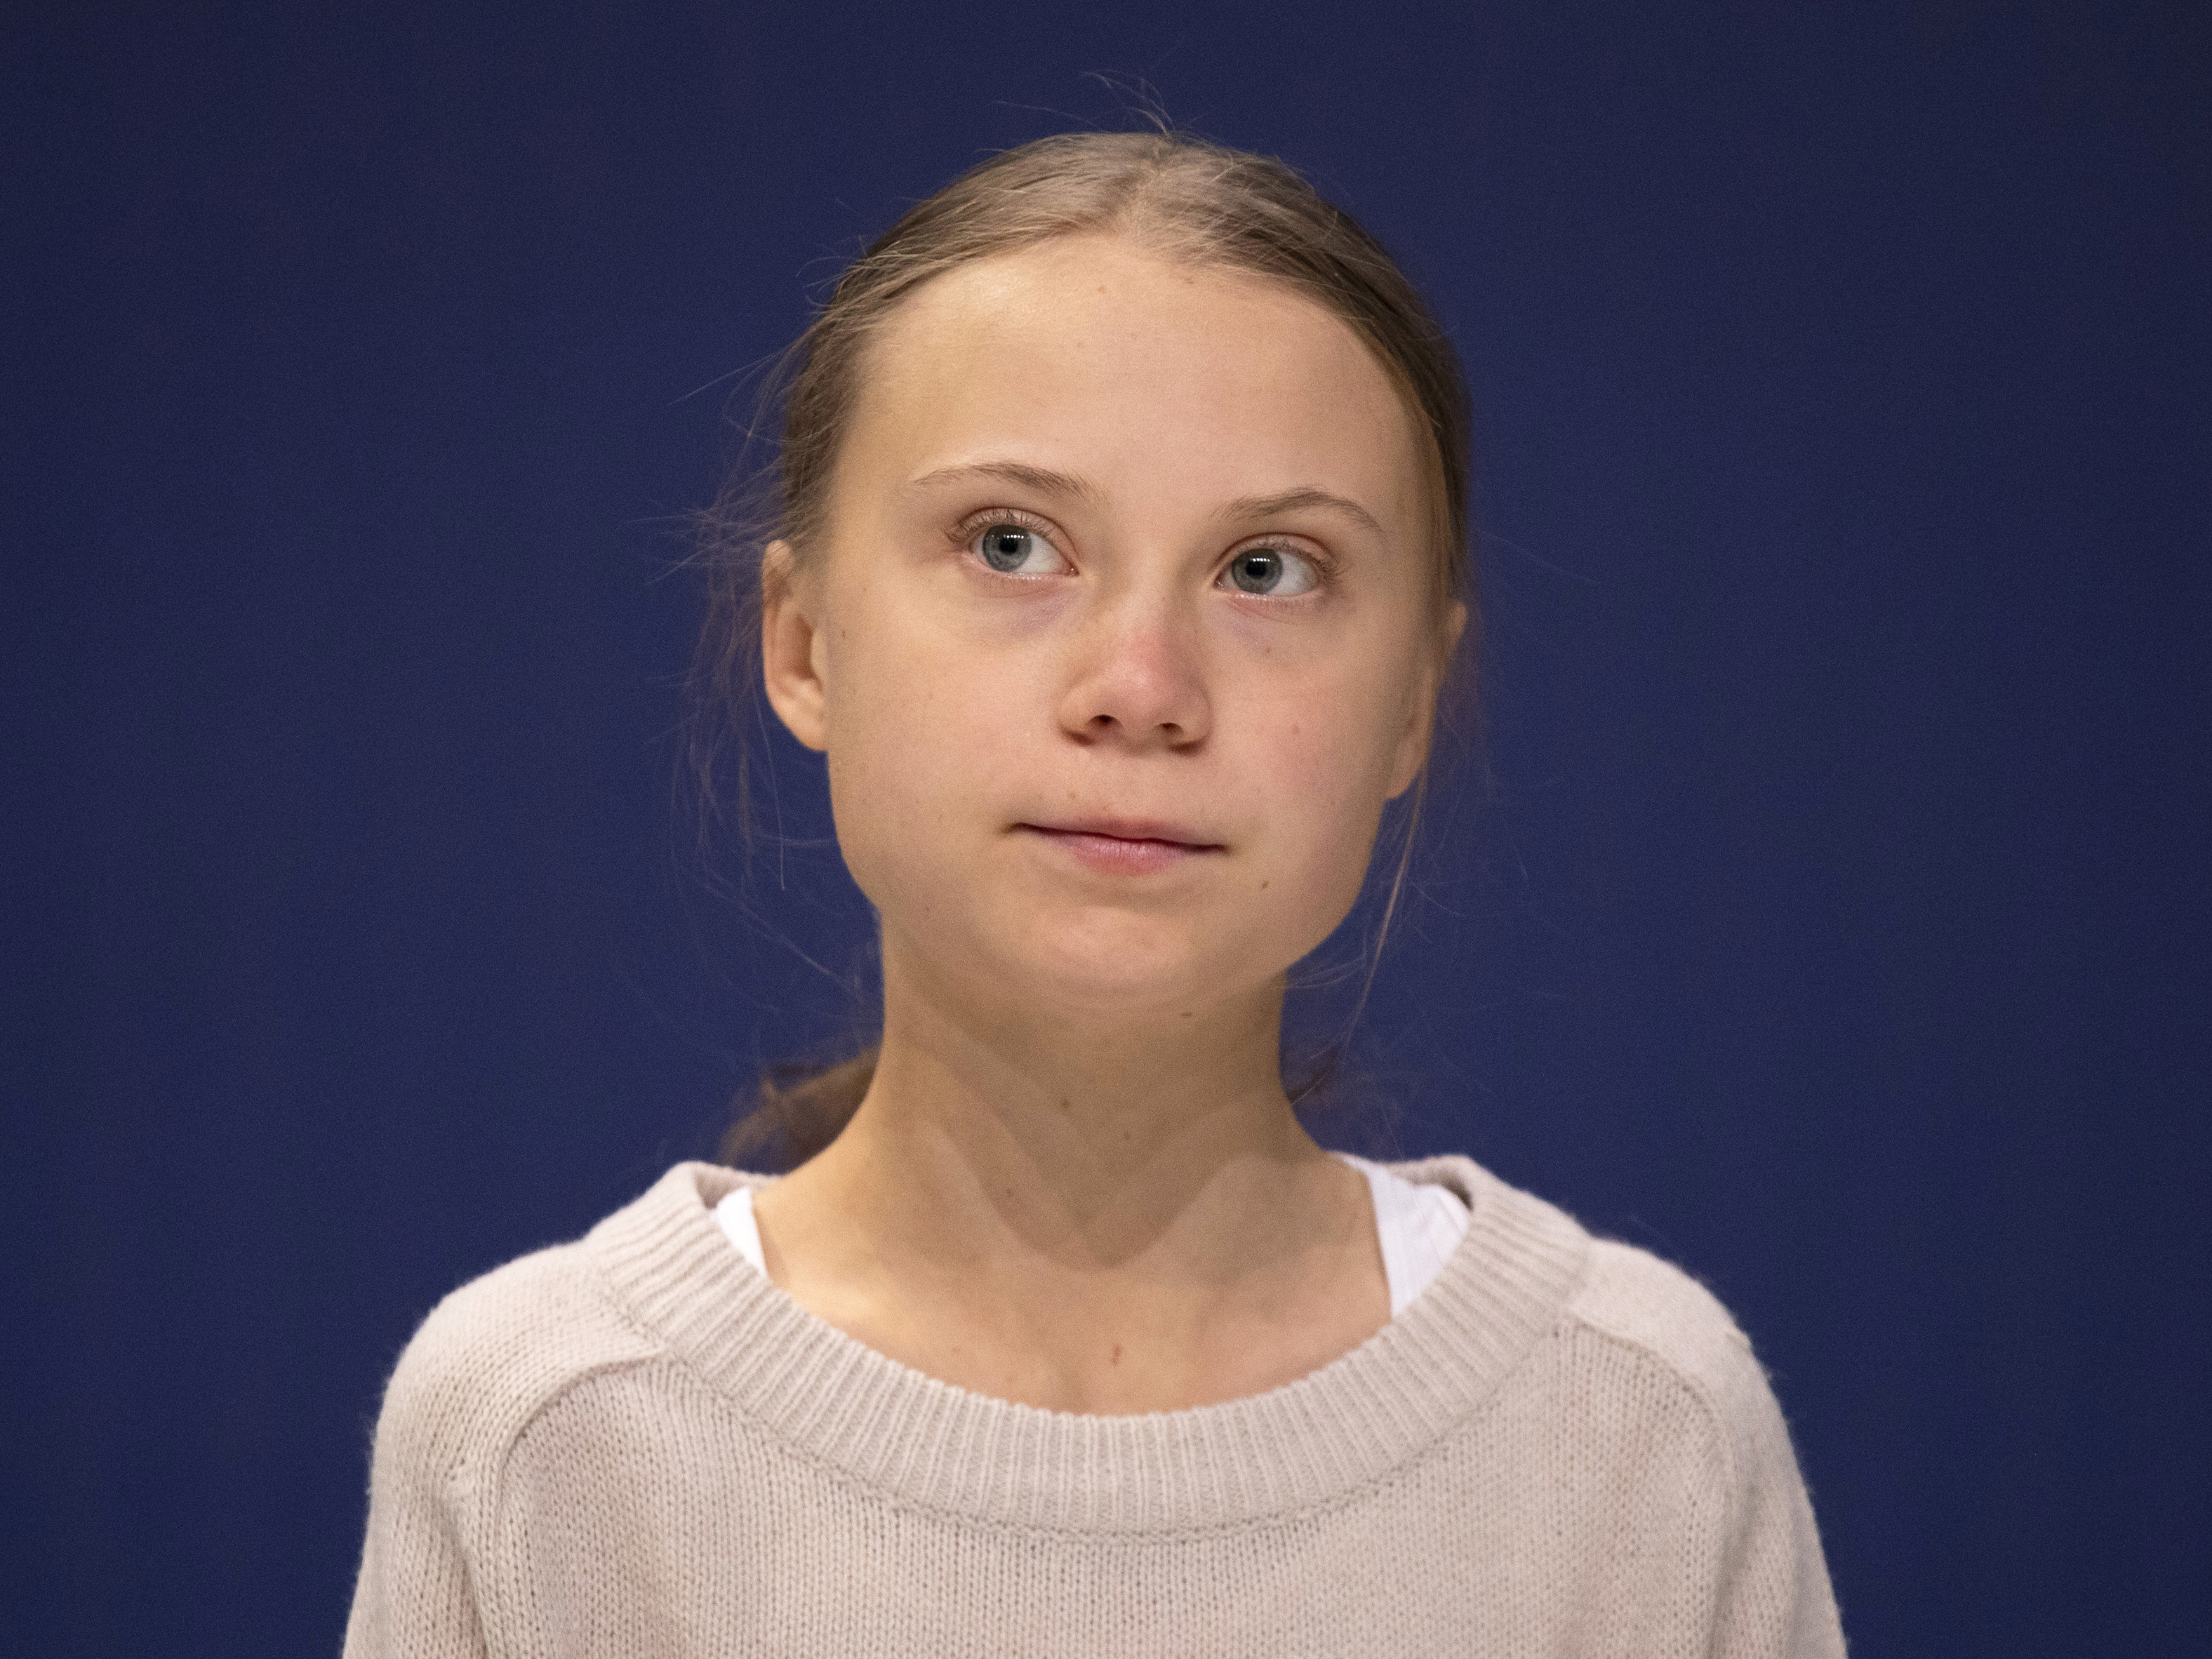 After Greta Thunberg Wins 'Time' Honor, Trump Suggests She 'Chill' And Watch A Movie